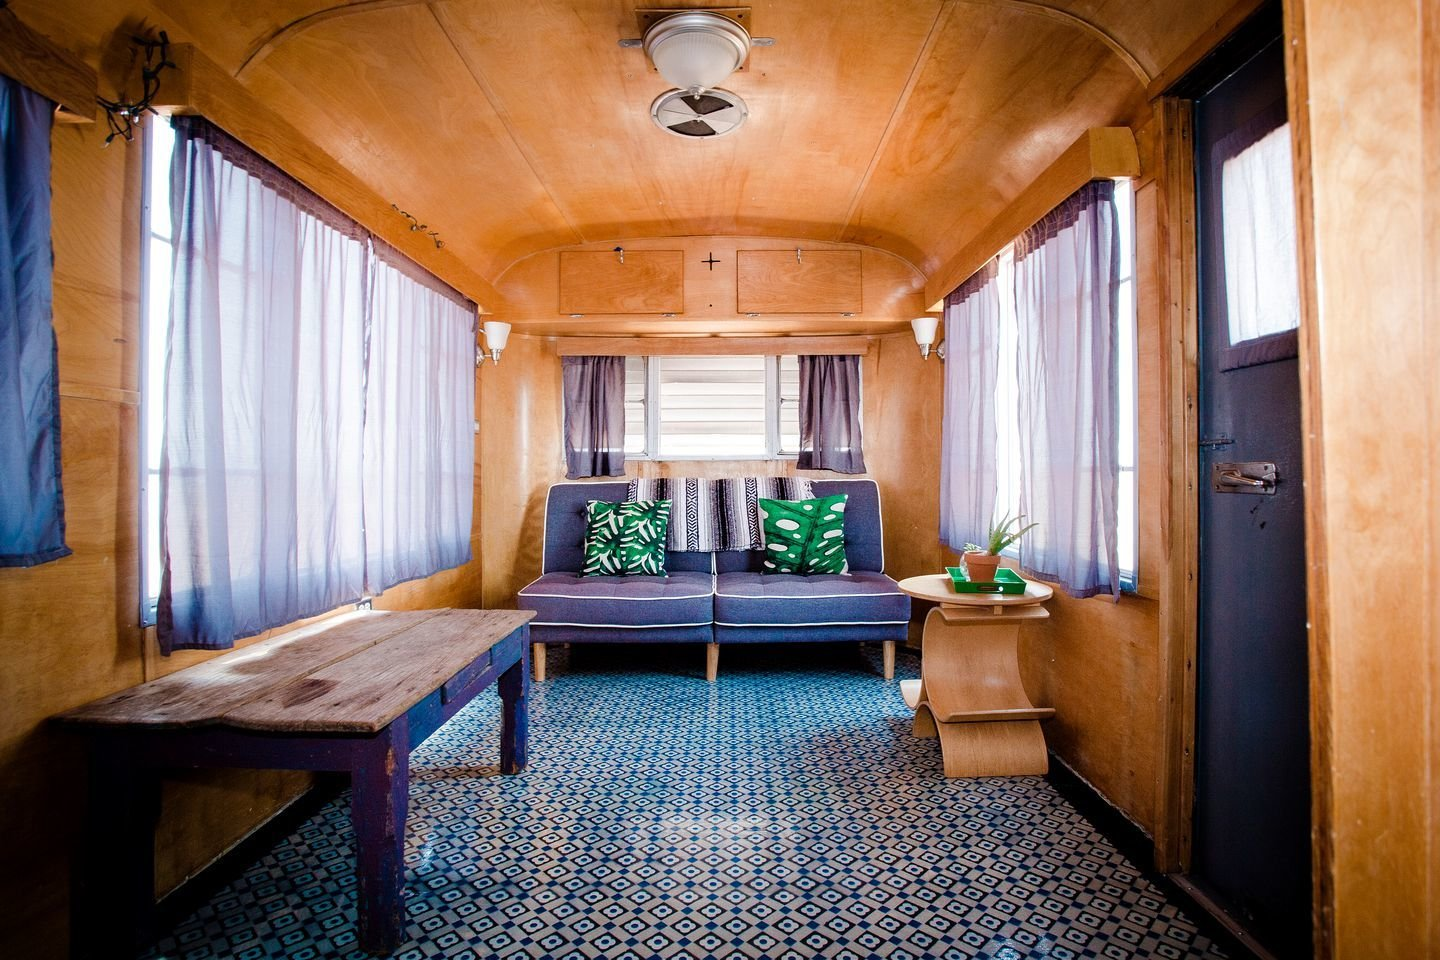 Living Room, Ceiling Lighting, End Tables, and Sofa This vintage trailer near Taos, New Mexico, has a charming interior with wood-clad walls and a patterned floor.  Photo 2 of 18 in 17 Kick-Ass Campers and Trailers You Can Rent From $45 a Night